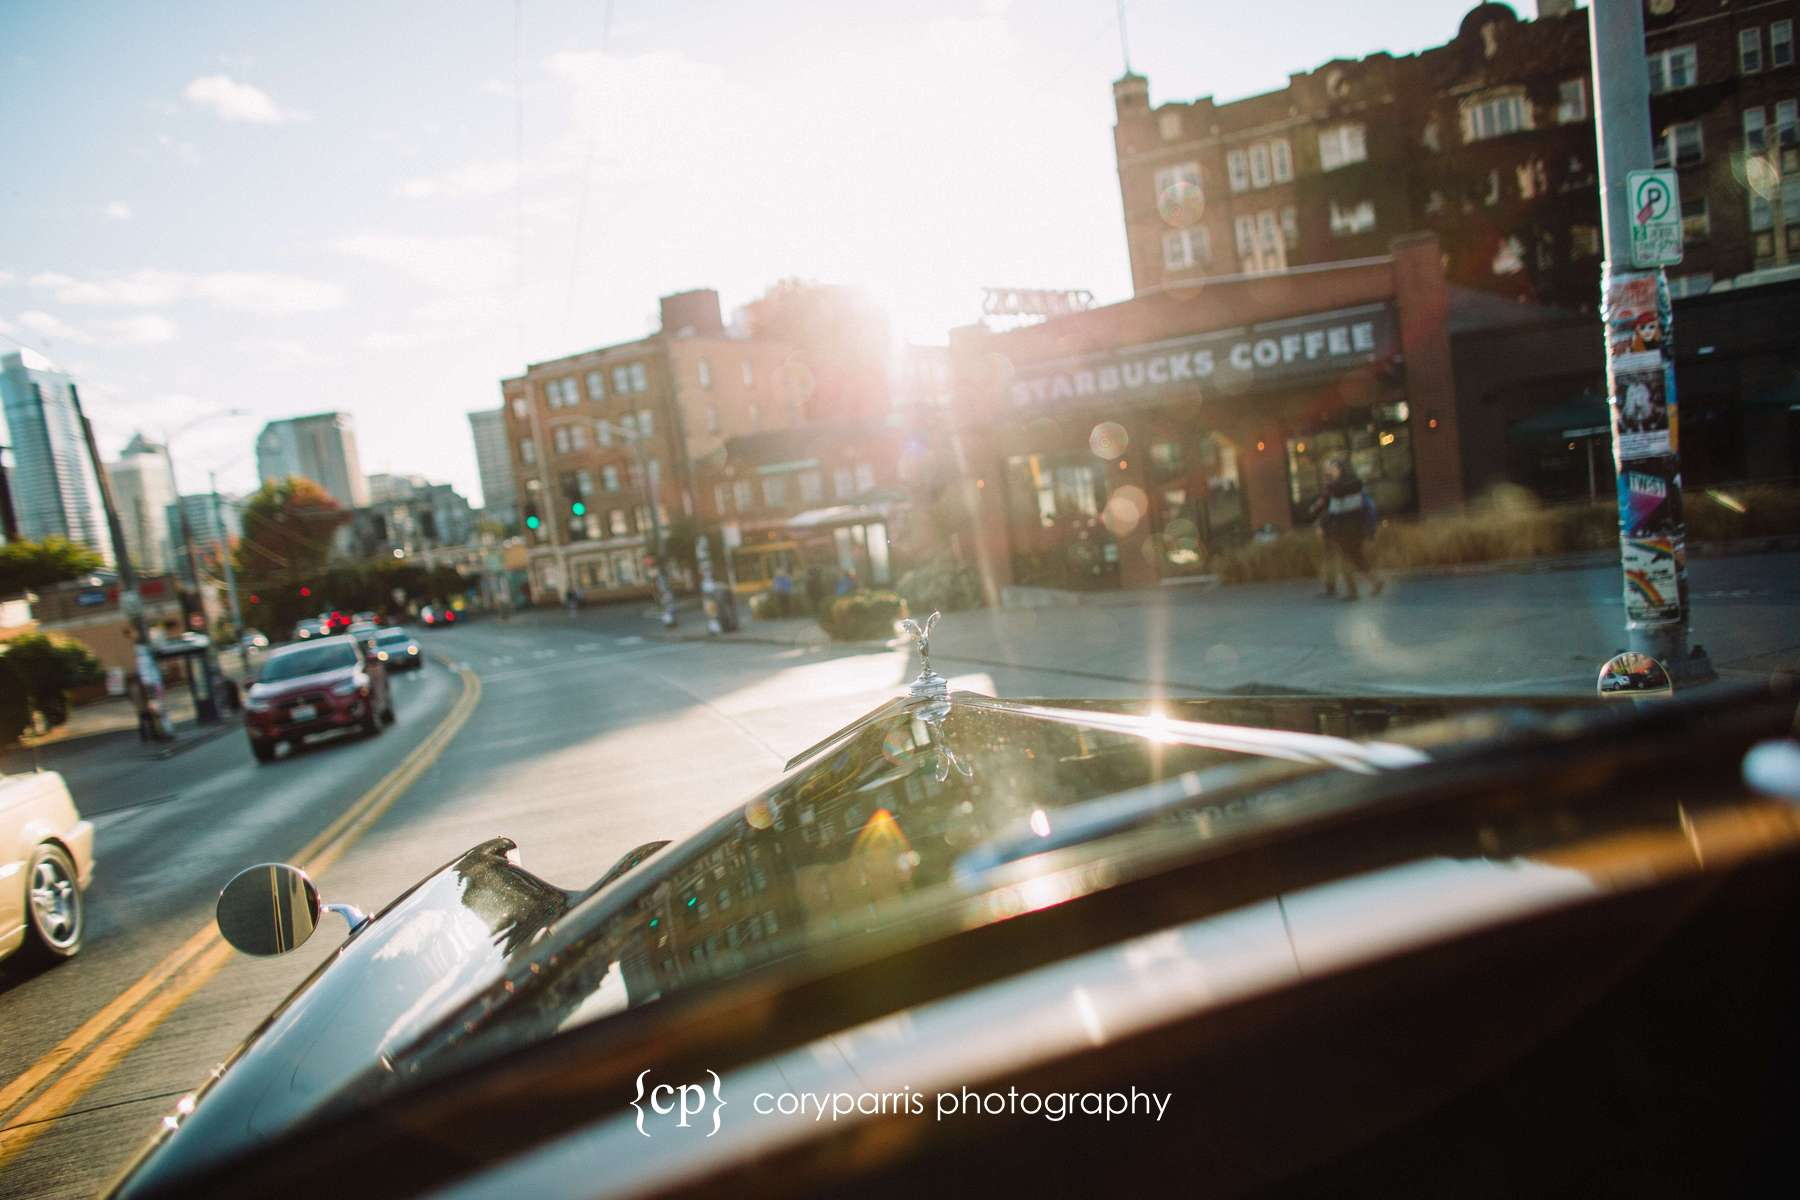 I just liked this image of the car driving through Capitol Hill in Seattle